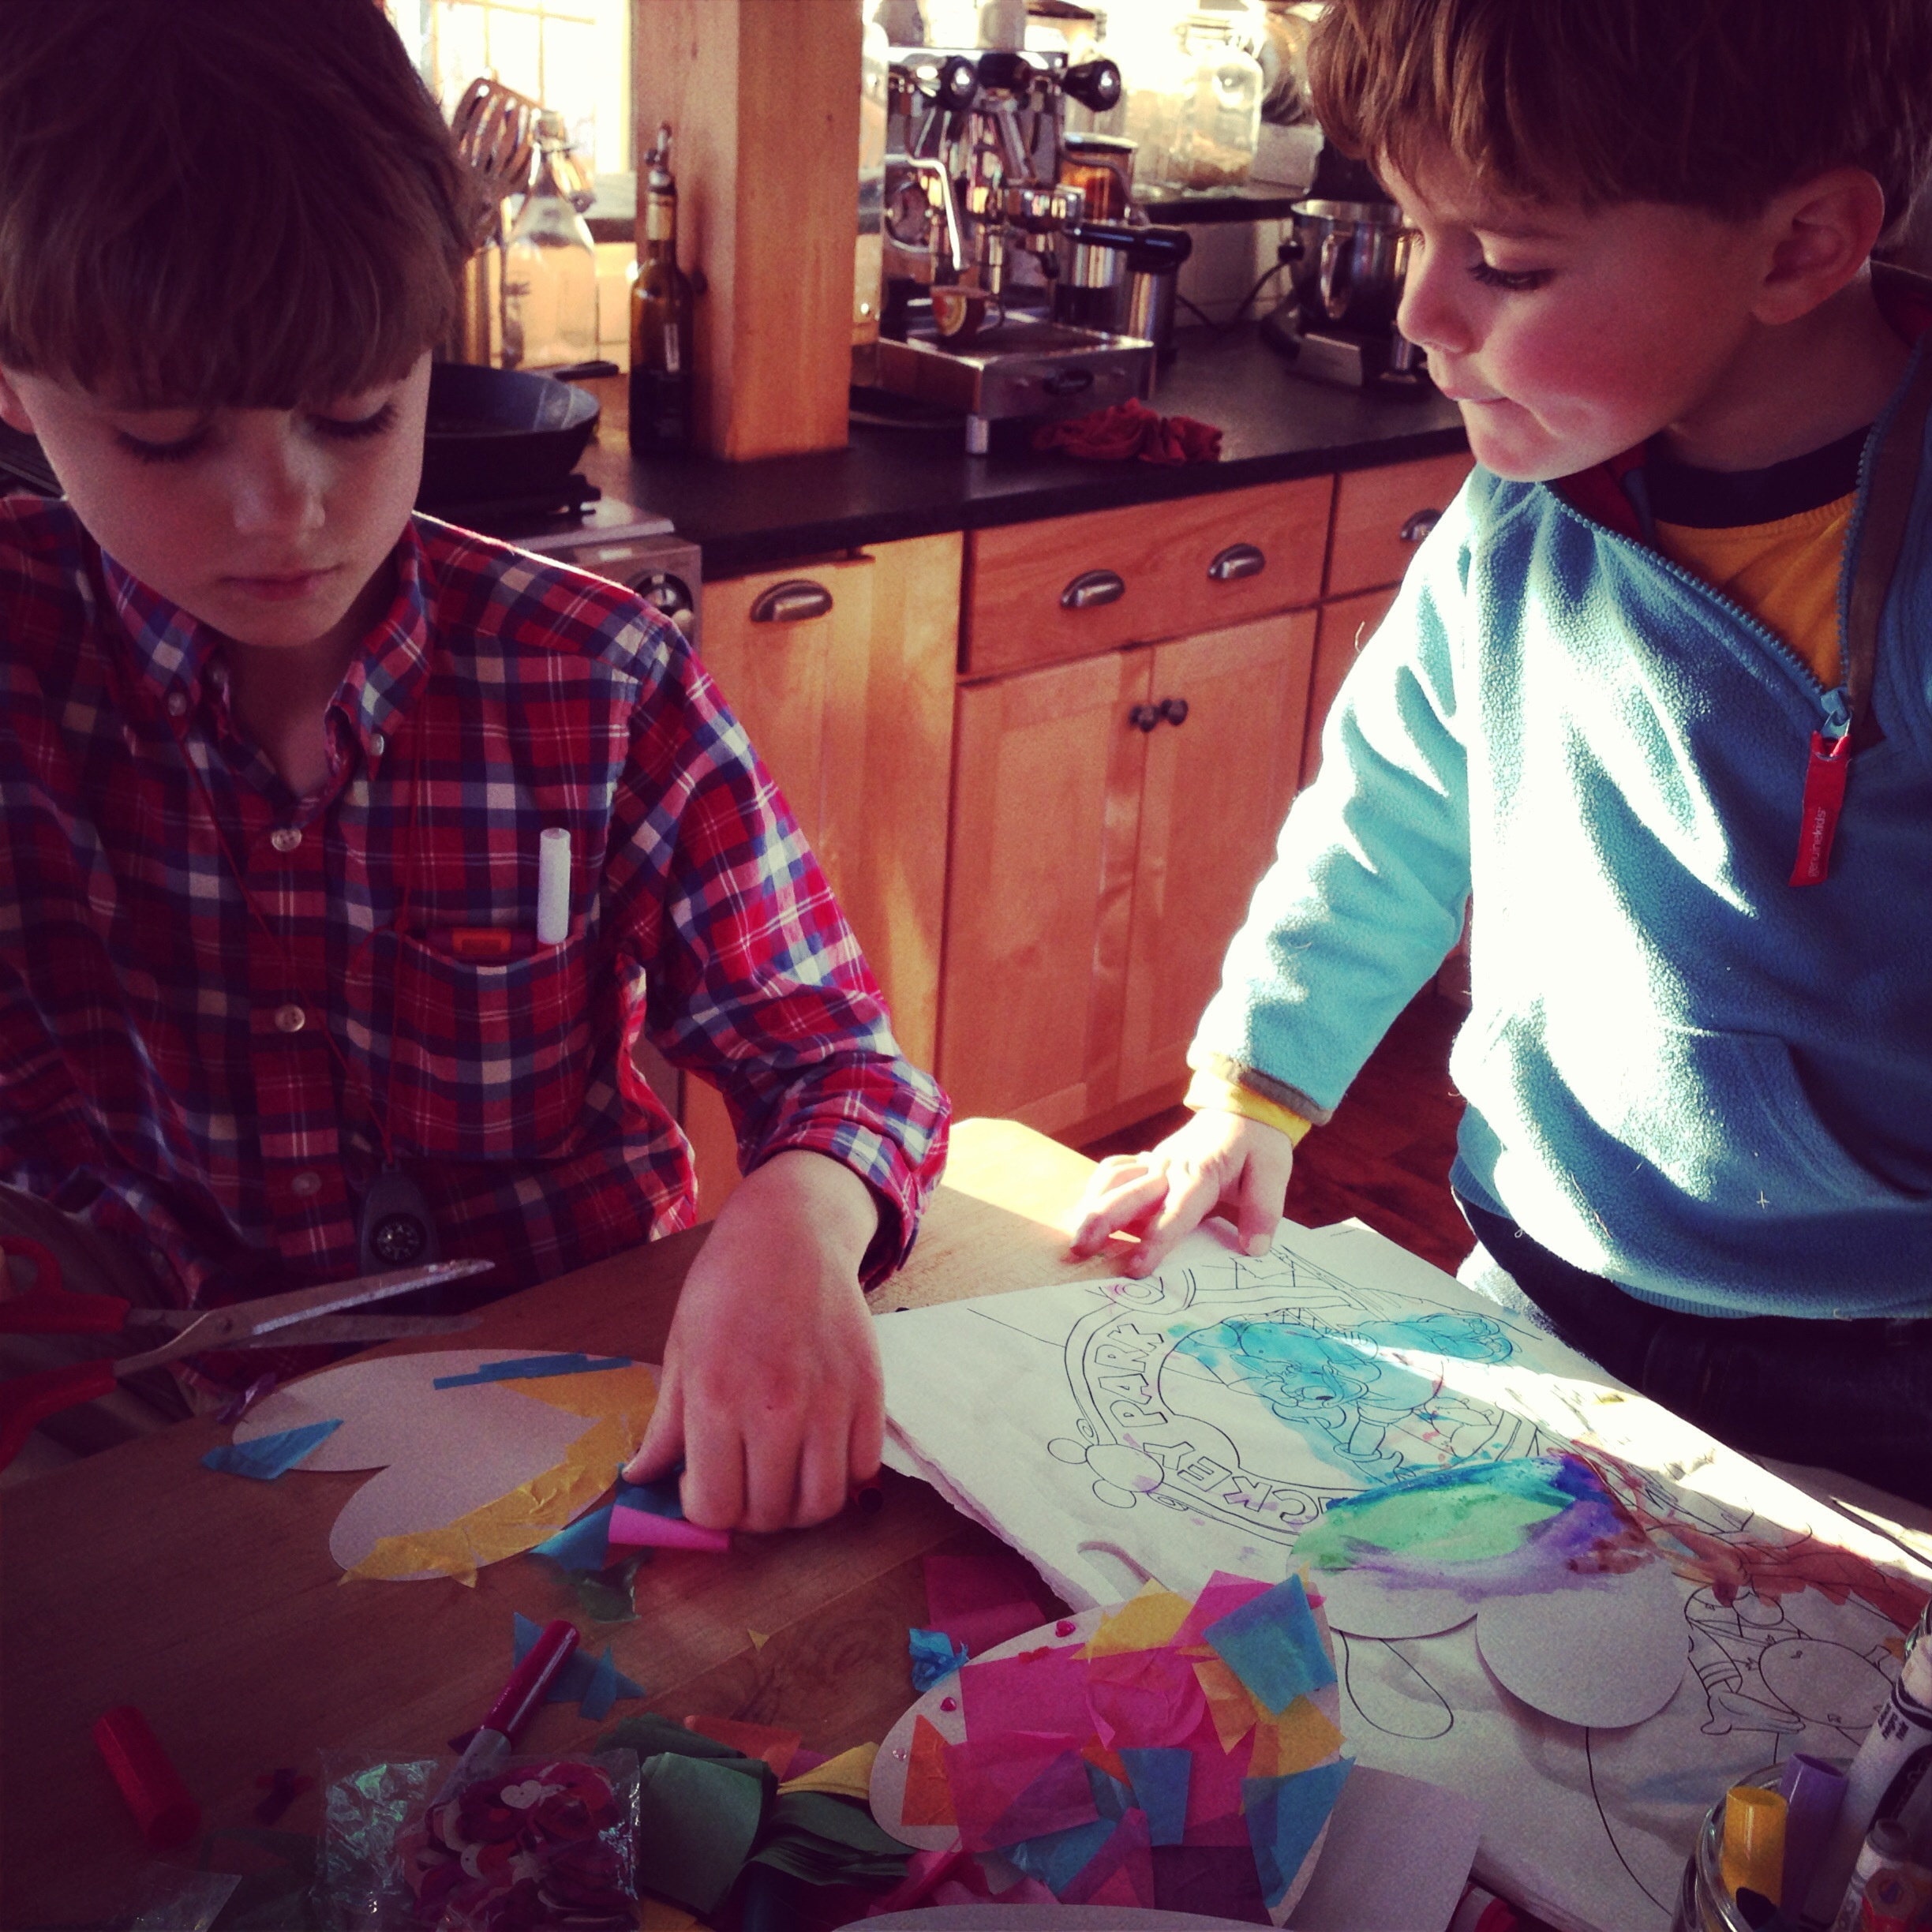 Boys Making Valentines - Christina Rosalie